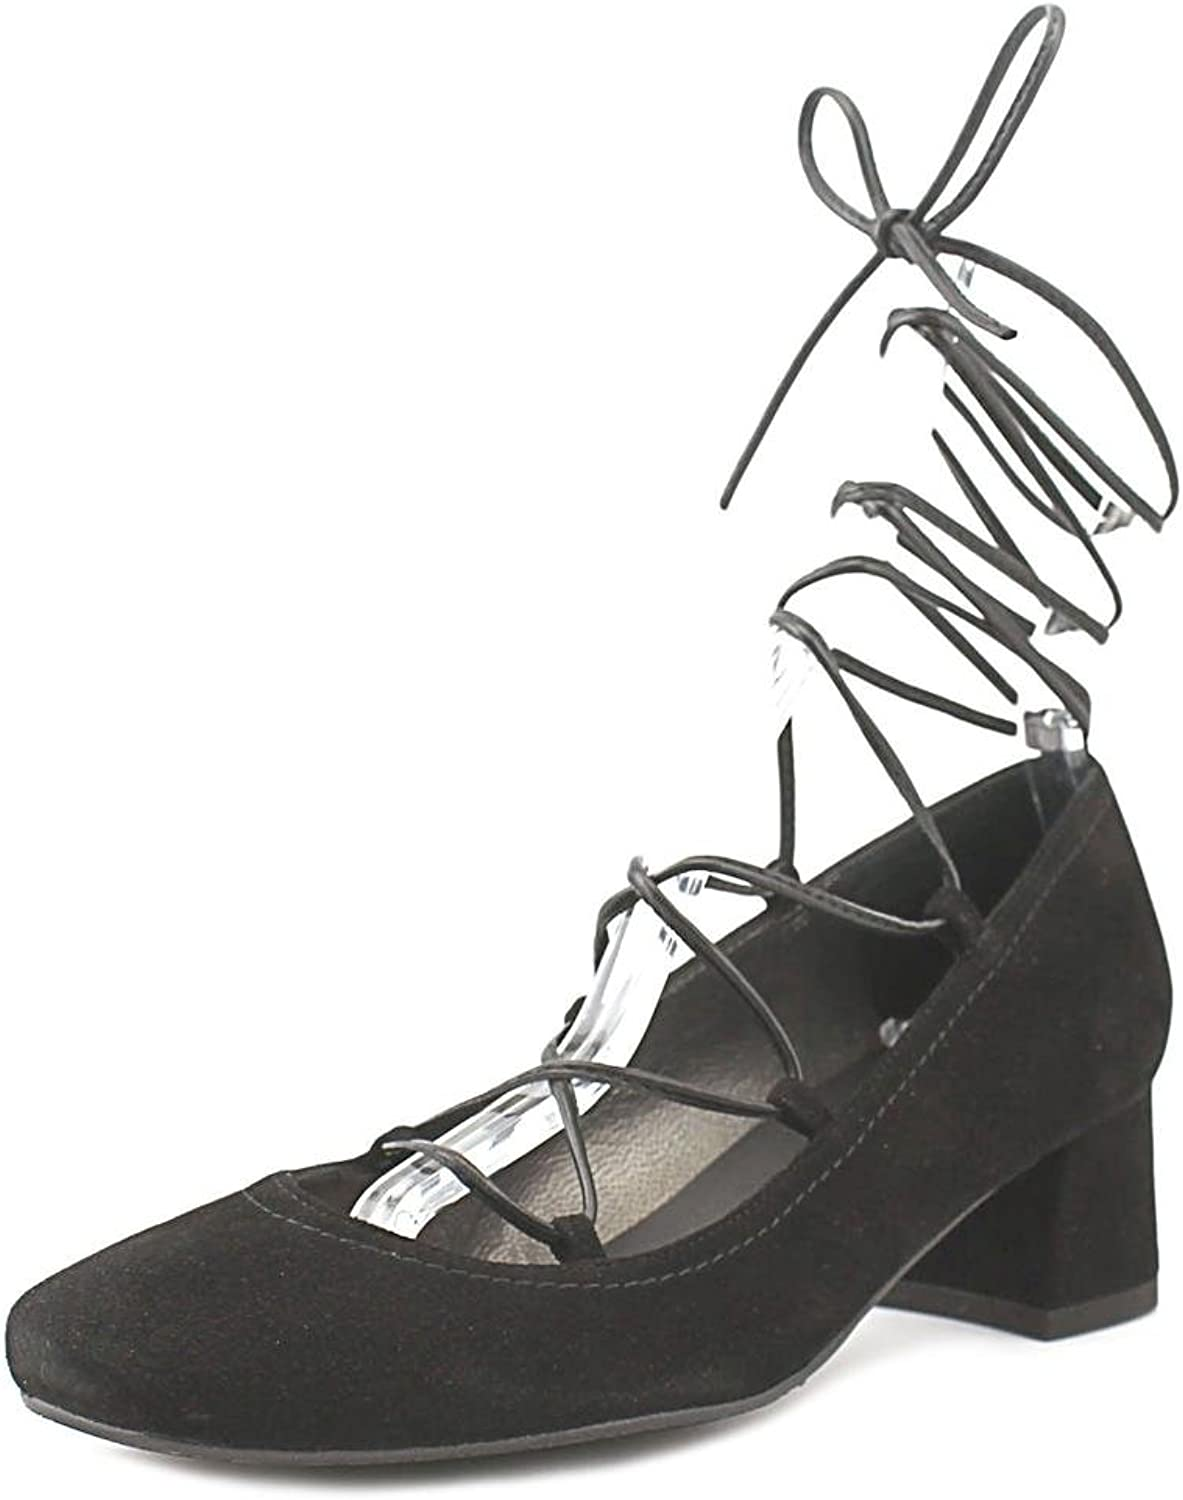 Stuart Weitzman Womens Cordon Suede Square Toe Special Occasion Strappy Sandals